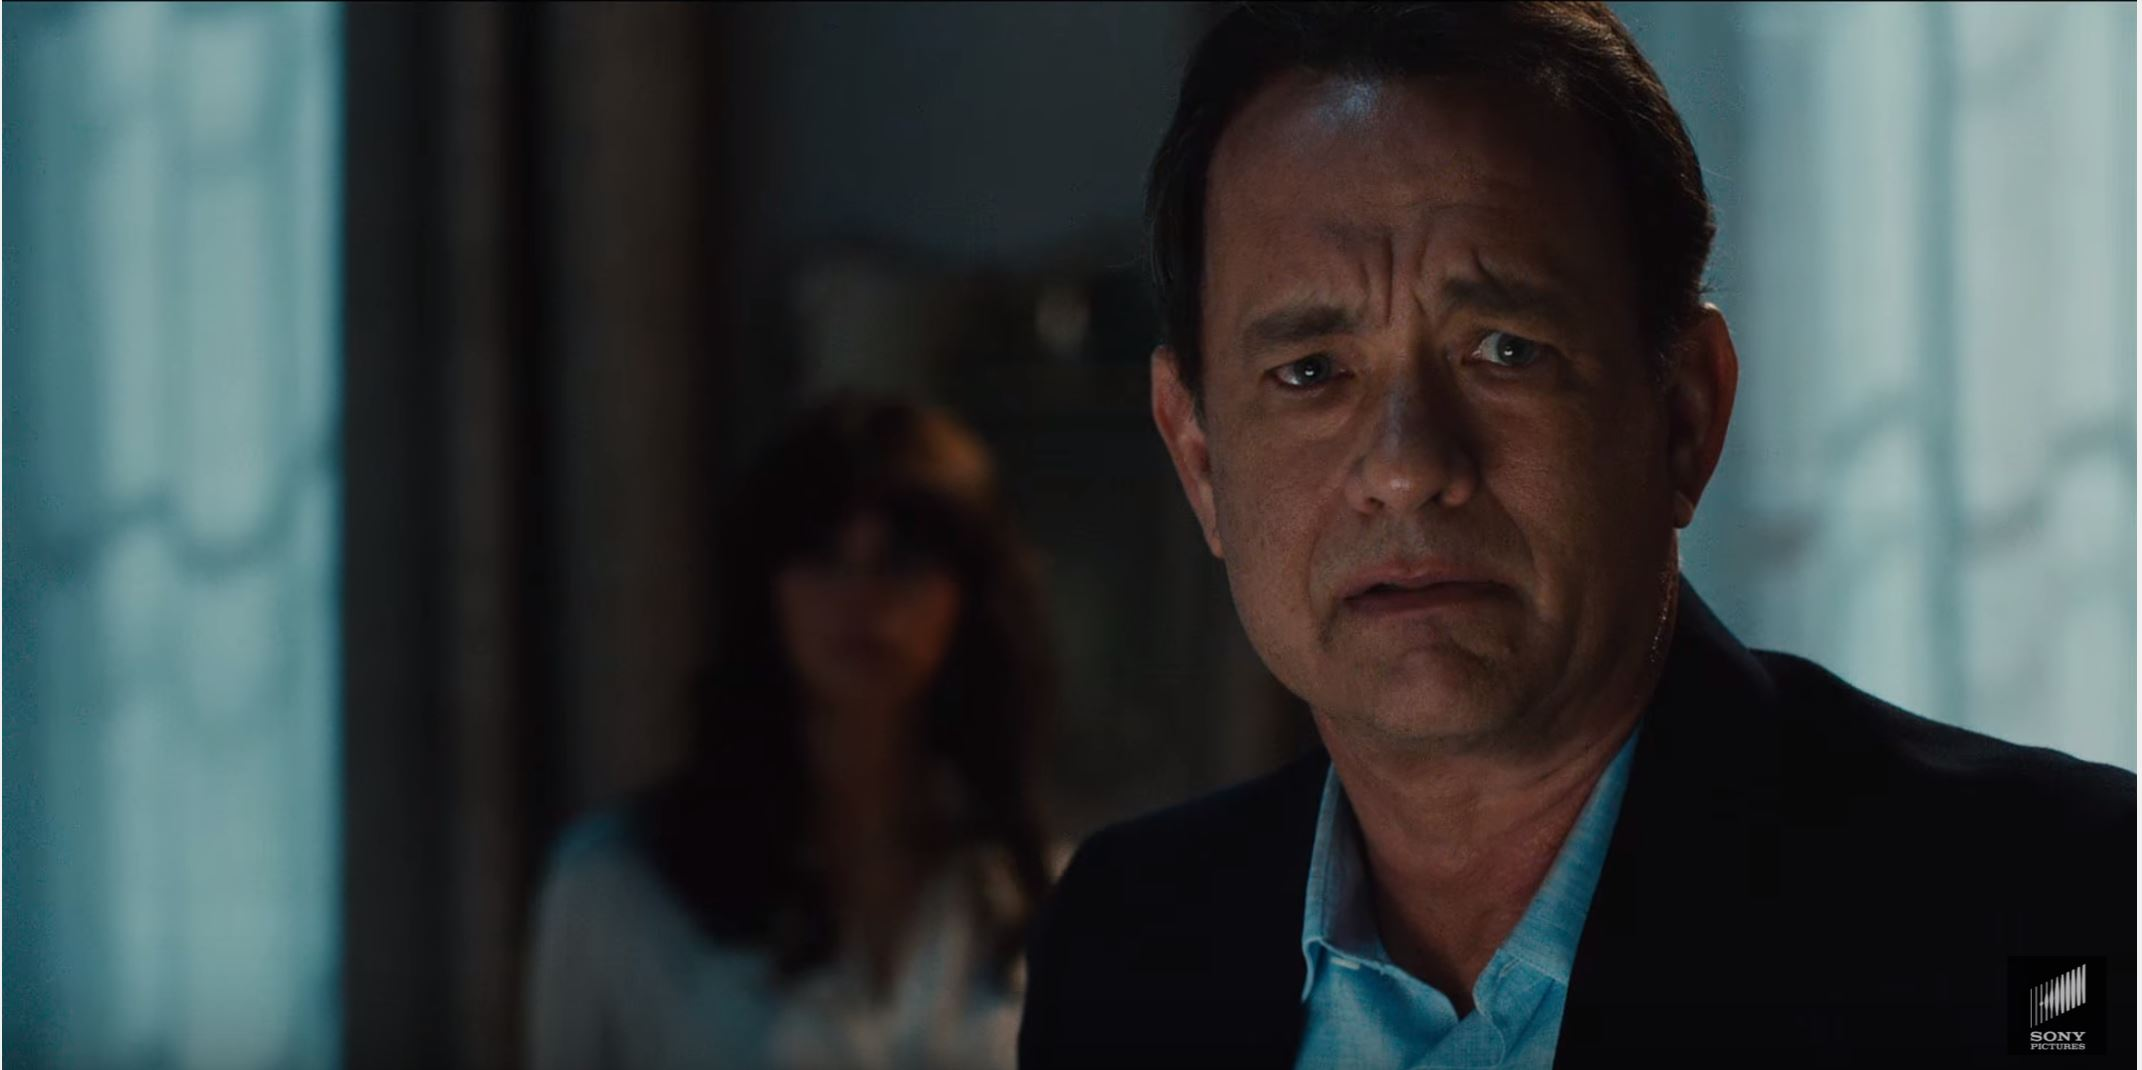 The Inferno Trailer Featuring Tom Hanks